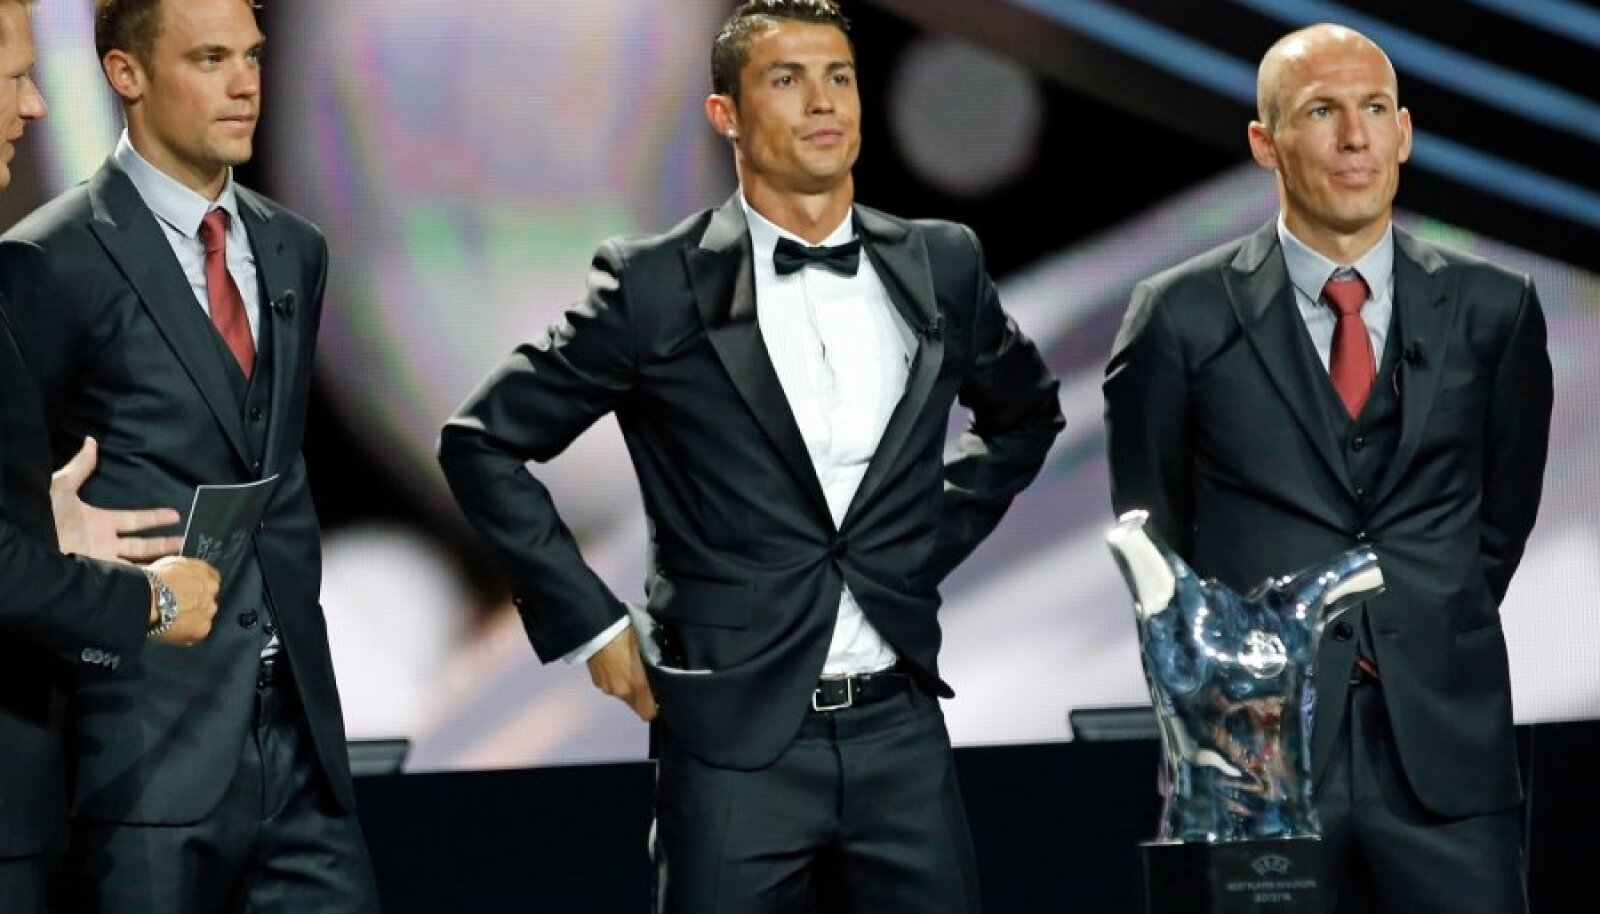 Real Madrid's Cristiano Ronaldo is seen with Bayern Munich's Manuel Neuer and Arjen Robben before receiving his Best Player UEFA 2014 Award during the draw ceremony for the 2014/2015 Champions League soccer competition